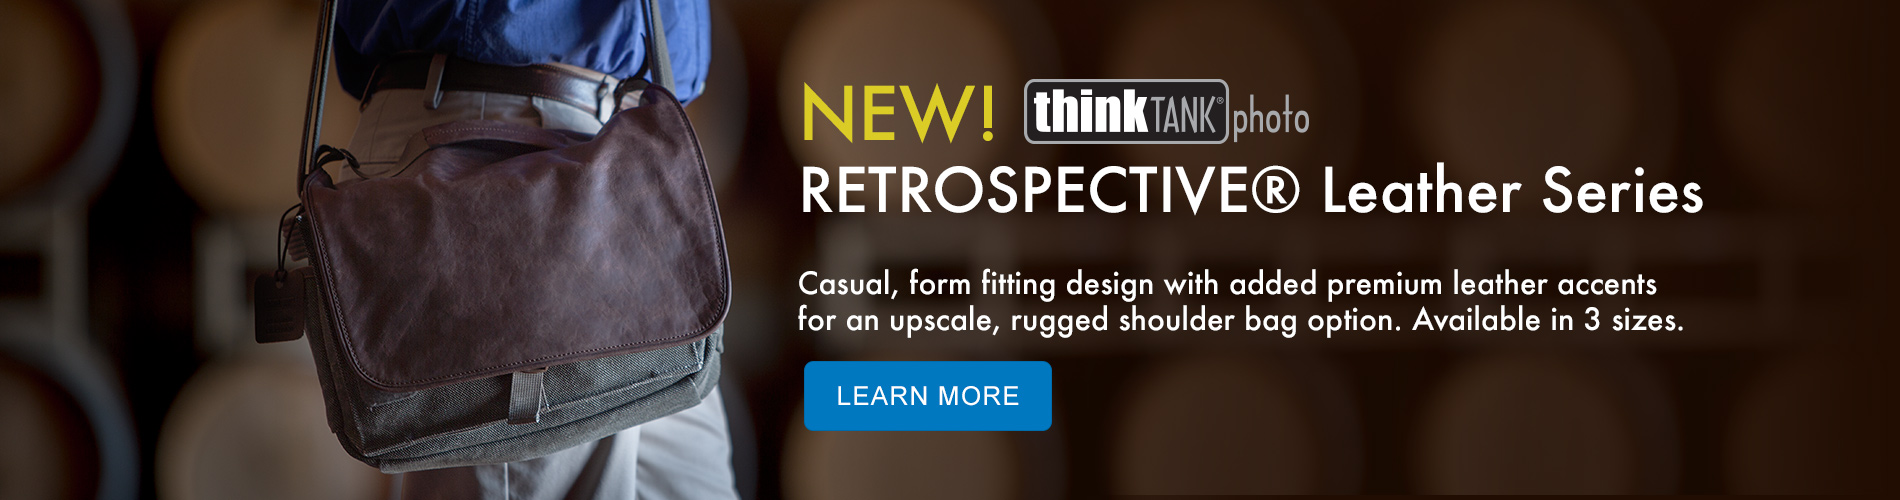 New from Think Tank Photo! Retrospective Leather Series - Casual, form fitting design with added premium leather accents for an upscale, rugged shoulder bag option. Available in 3 sizes. Learn More.